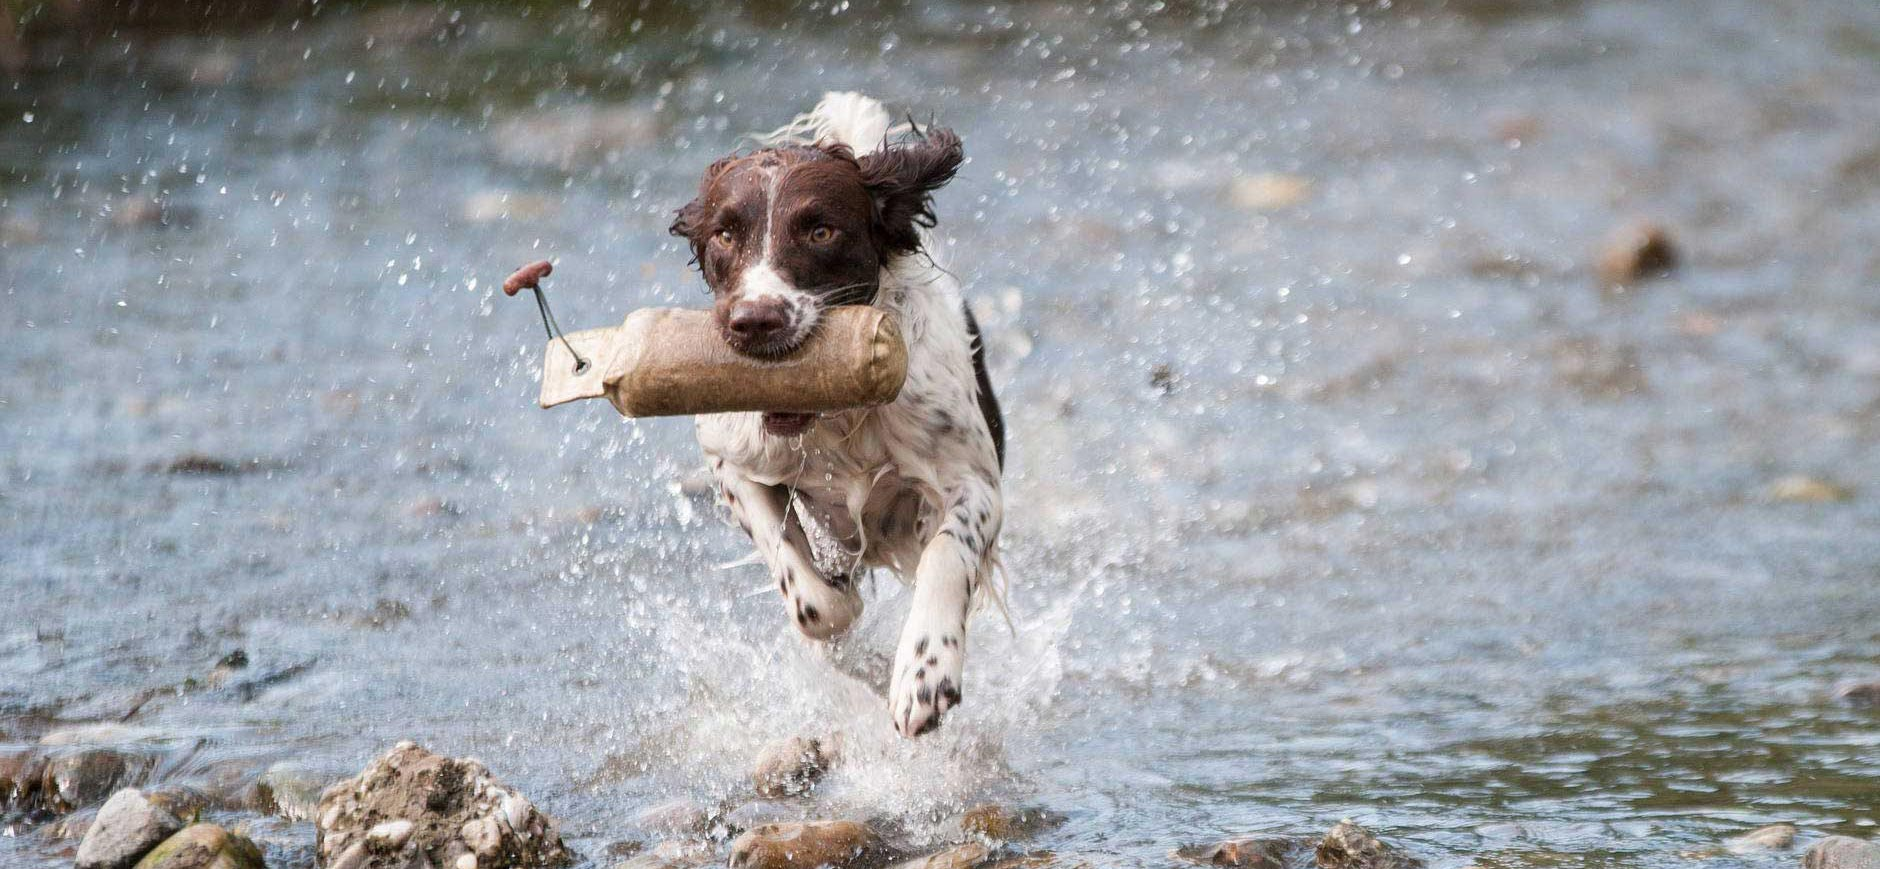 Gundog spaniel retrieving a dummy through water